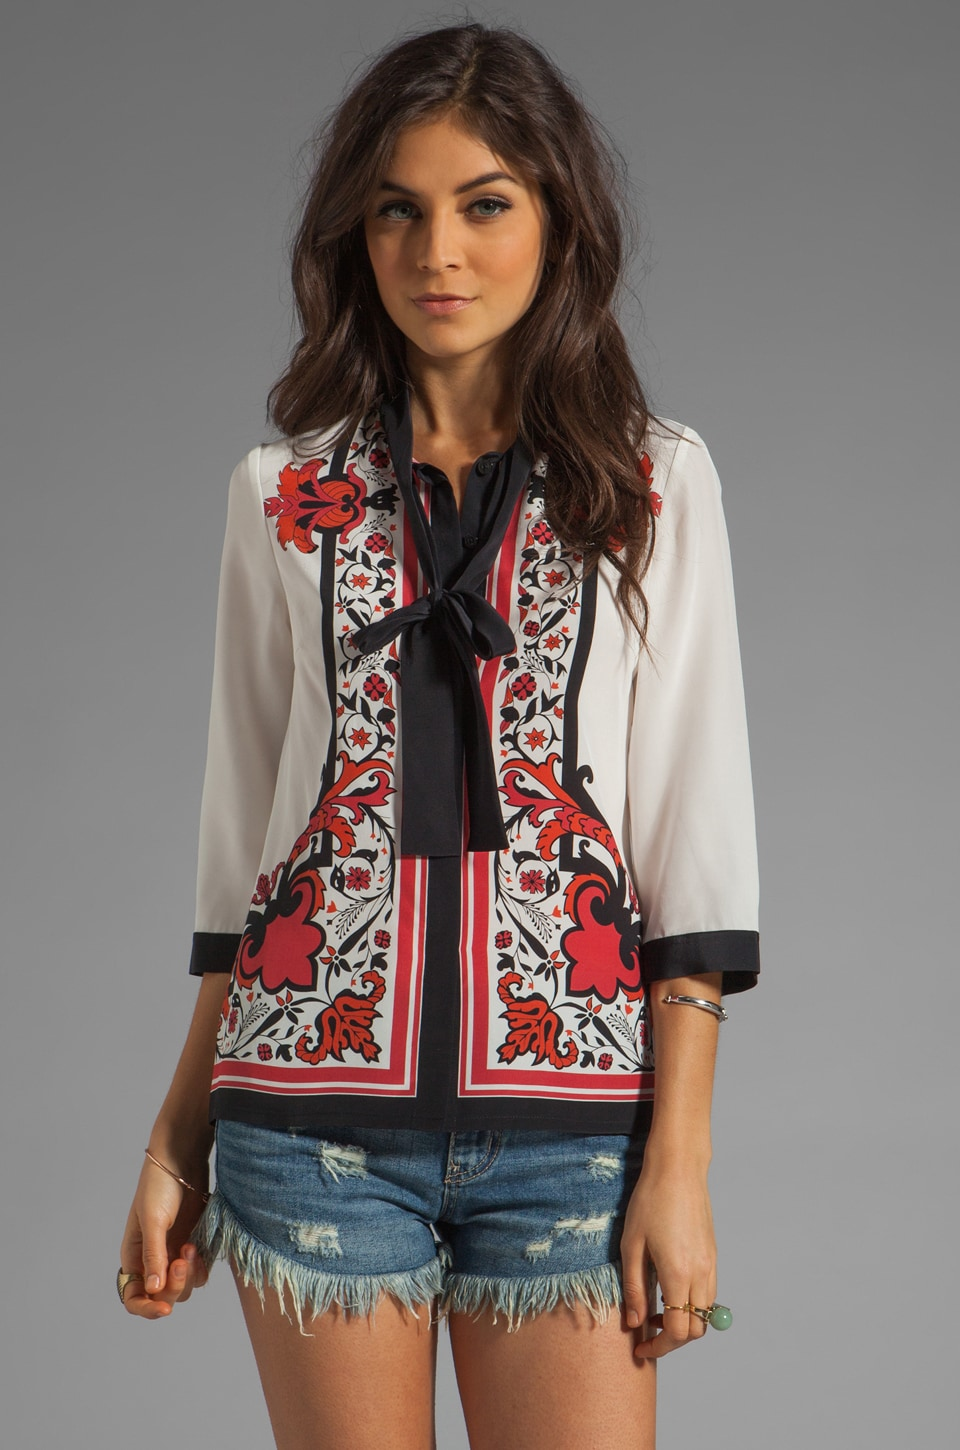 Alice by Temperley Nijinsky Print Shirt in Red Mix